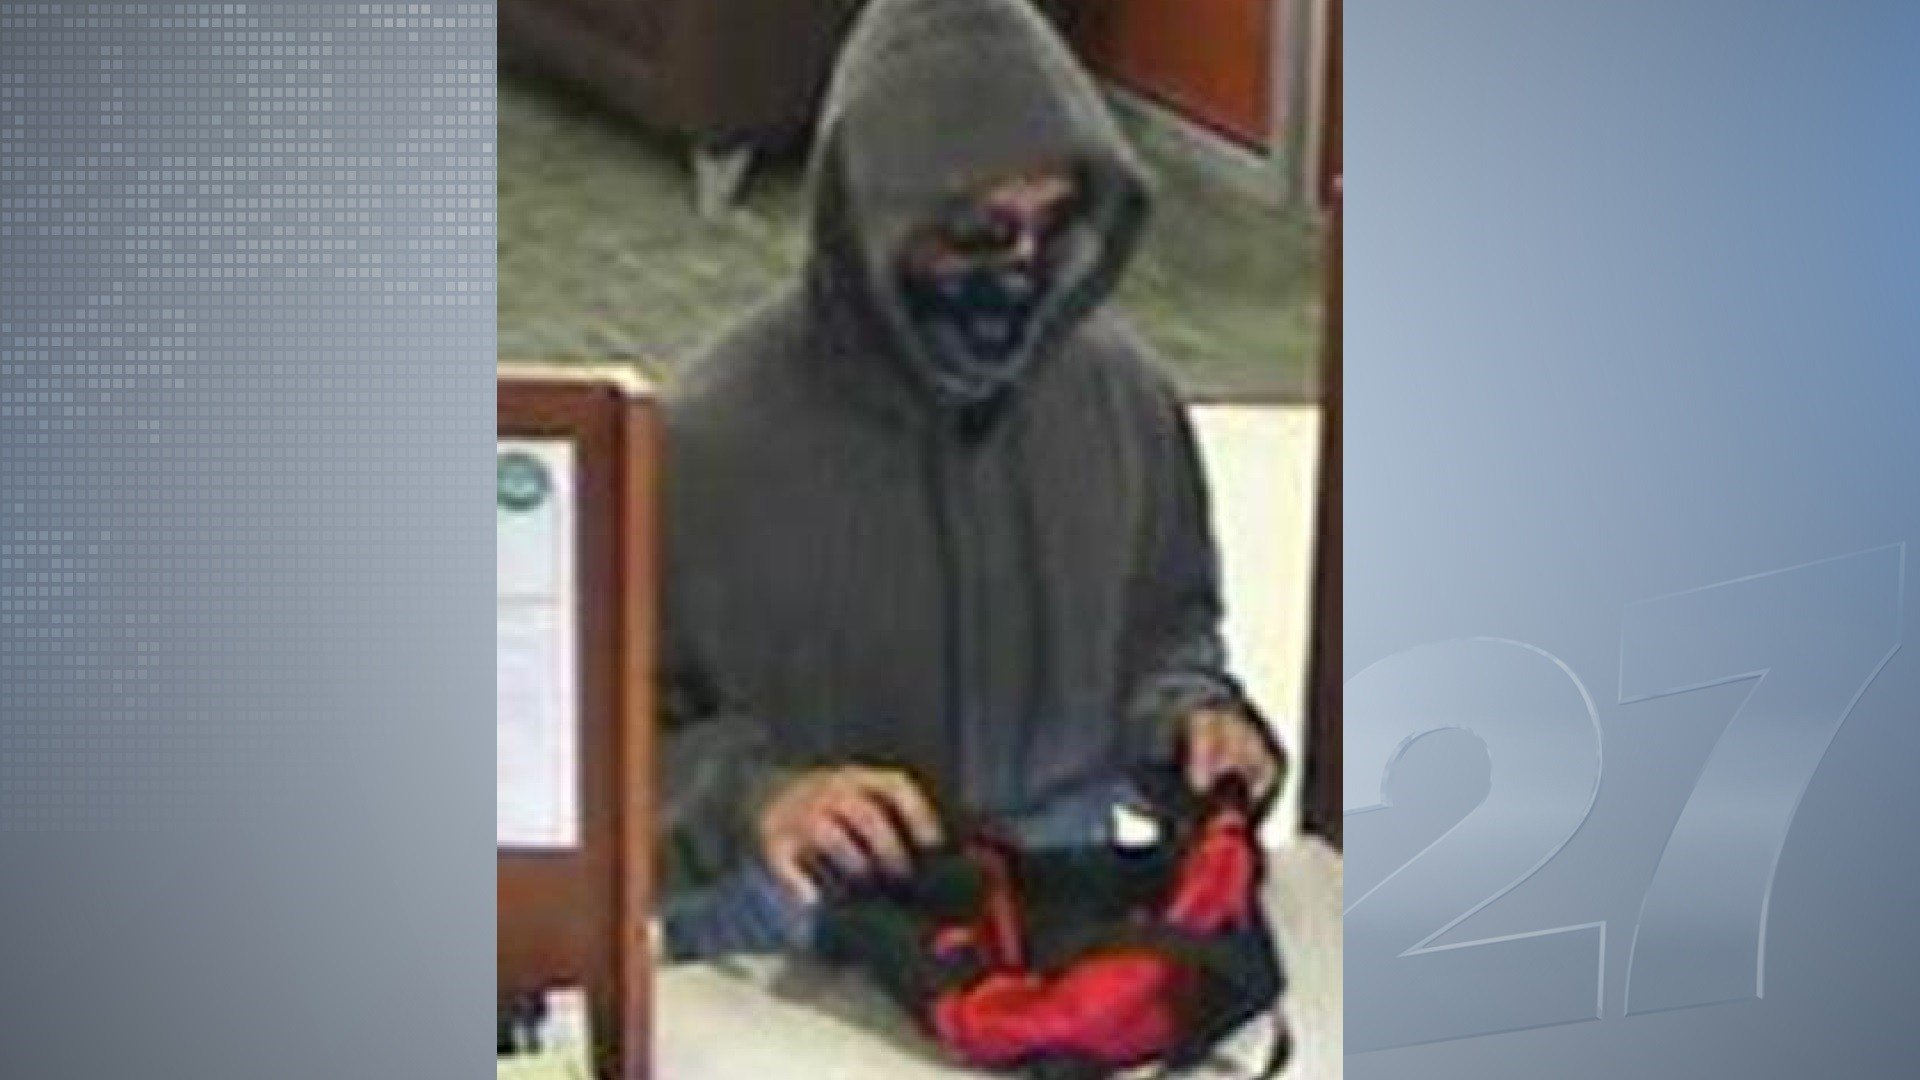 Bank robbery suspect from Aug. 9 atAssociated Bank on E. Broadway in Madison.